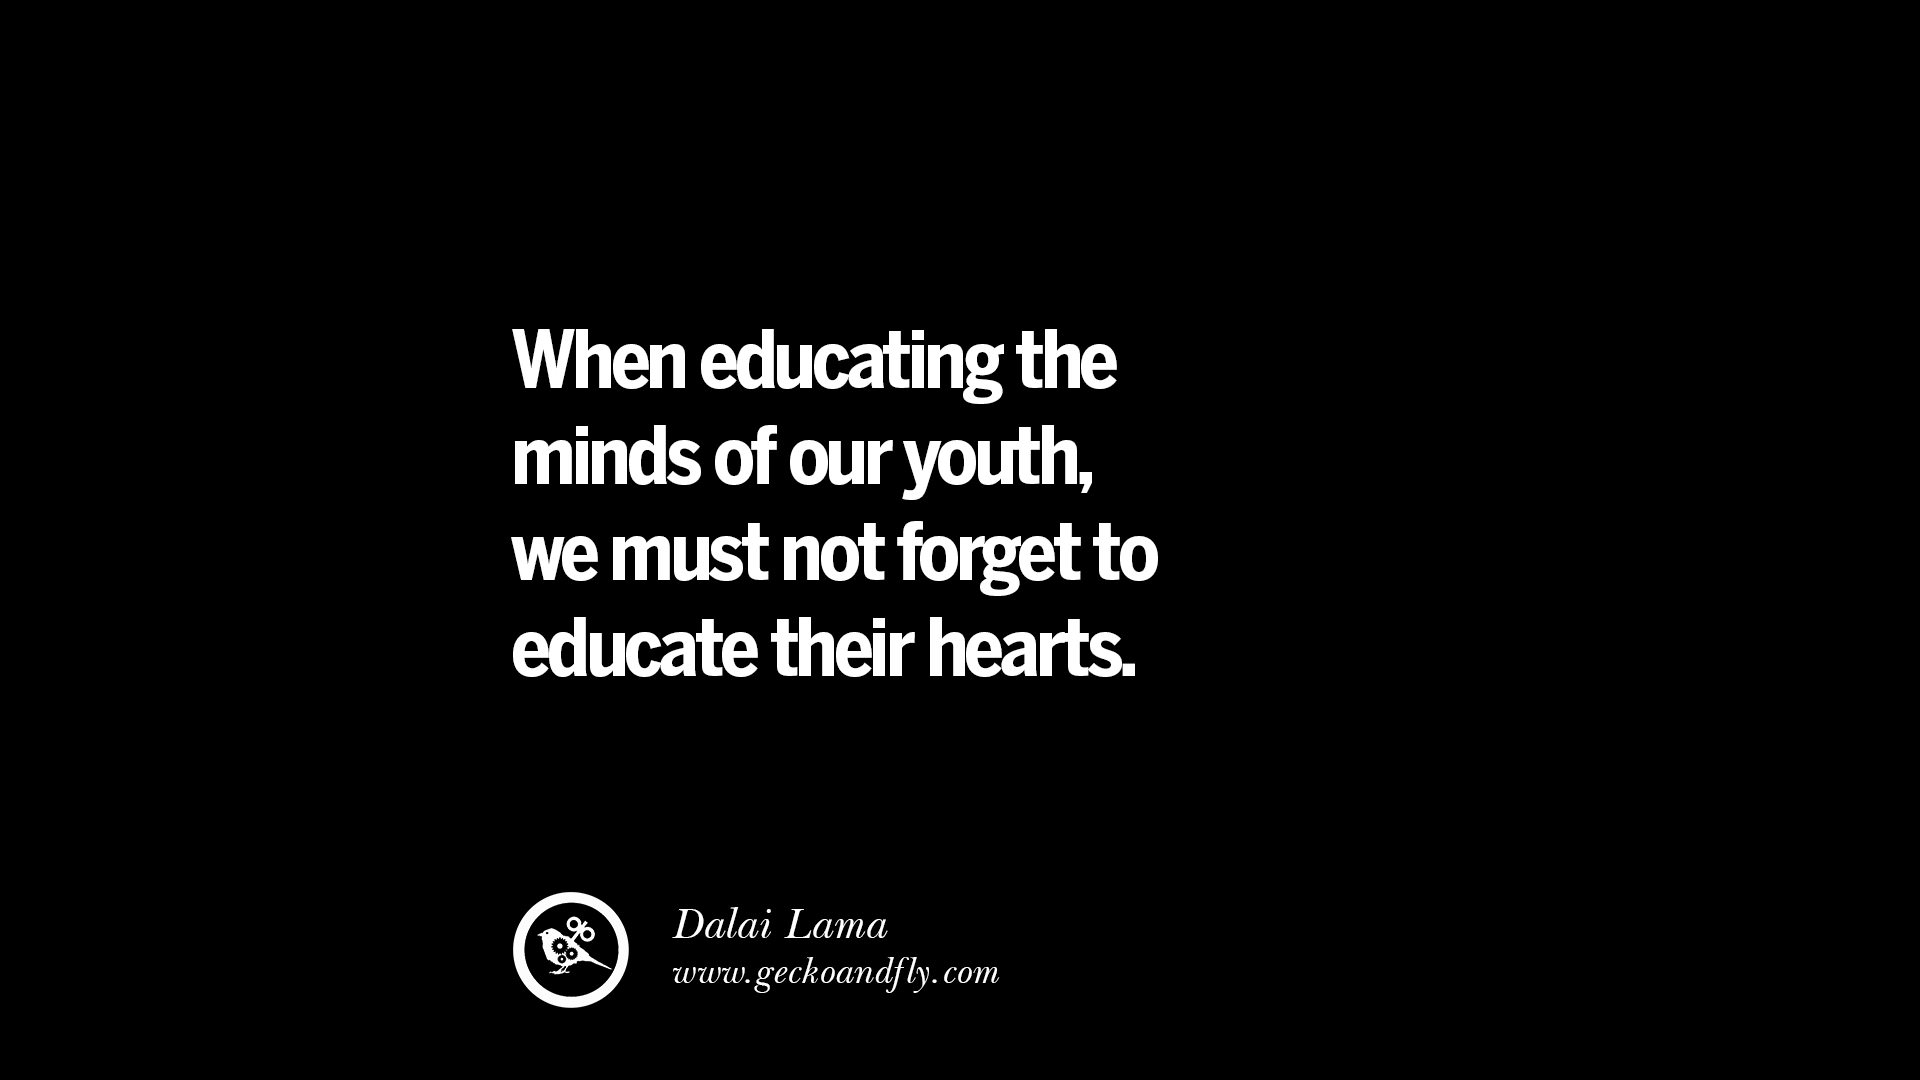 21 famous quotes on education school and knowledge